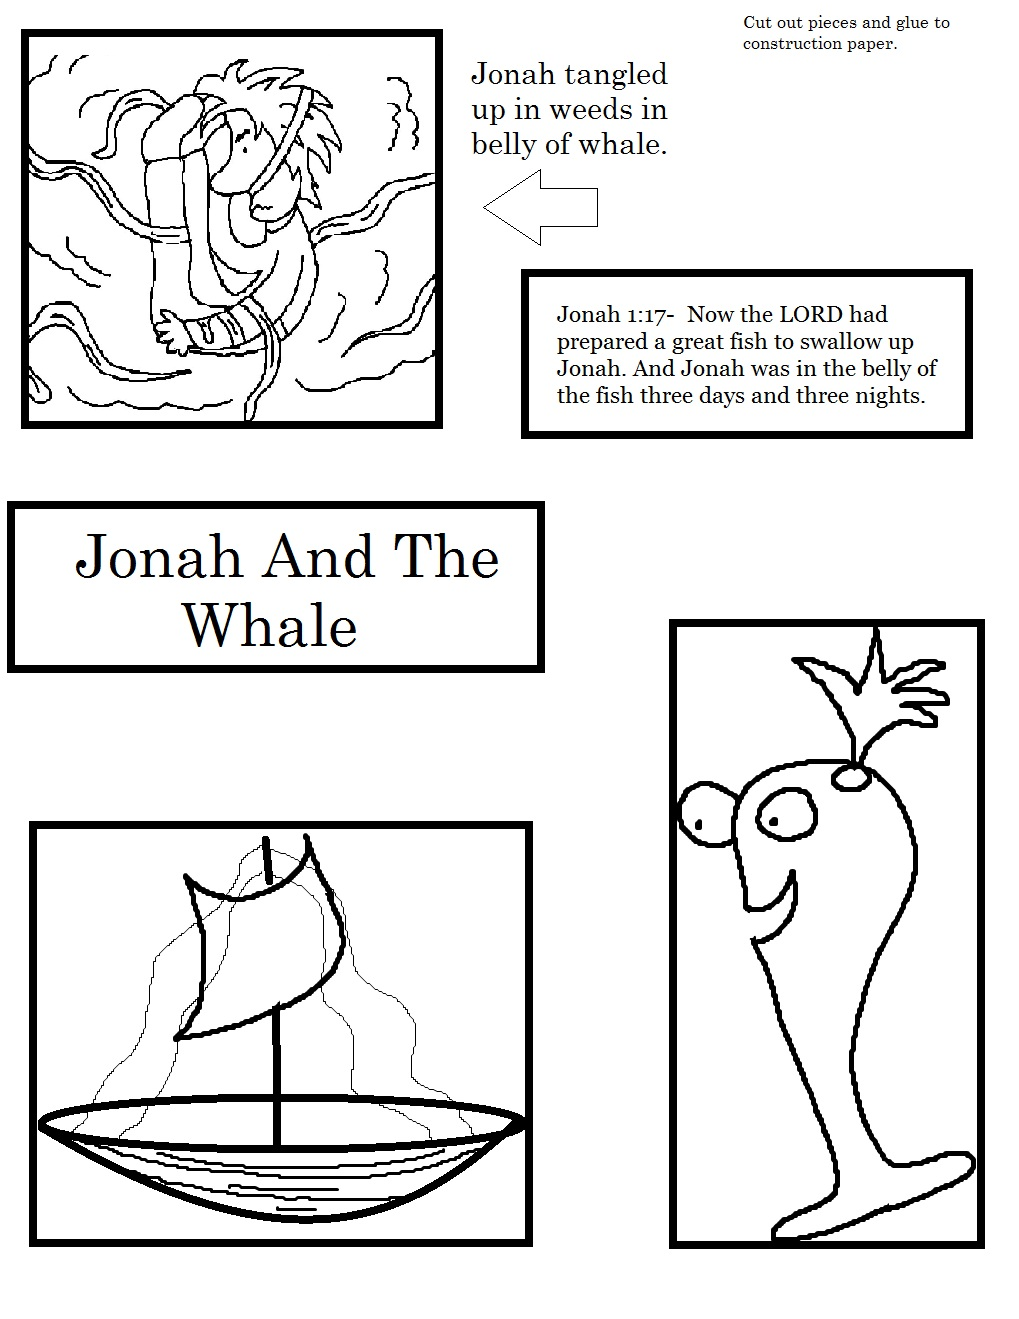 jonah and the whale sunday lesson 3